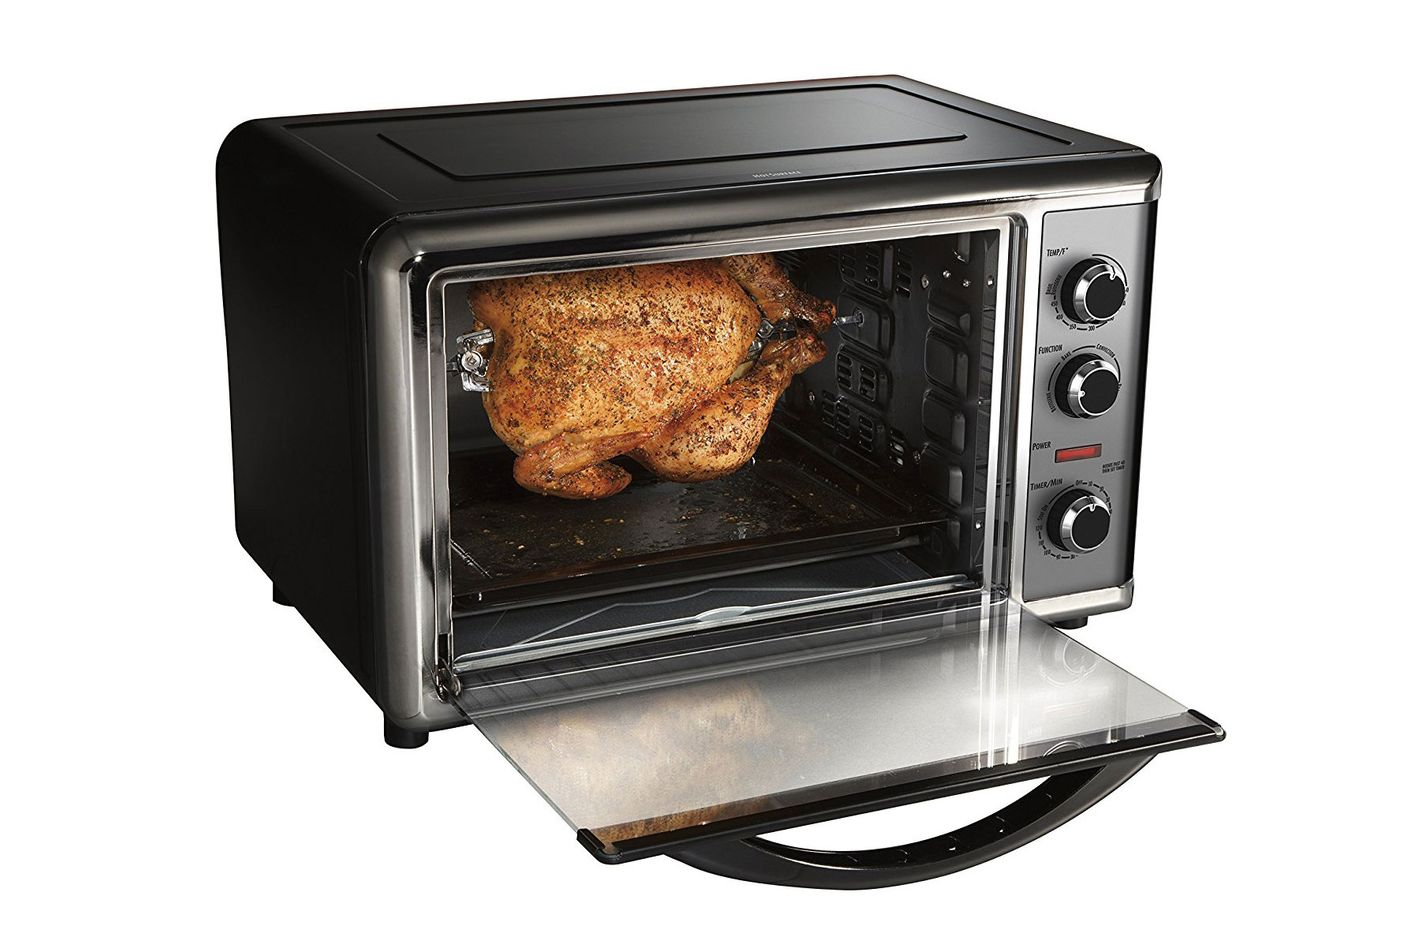 Best Under Cabinet Toaster Oven Best Toaster And Toaster Ovens Reviews 2017